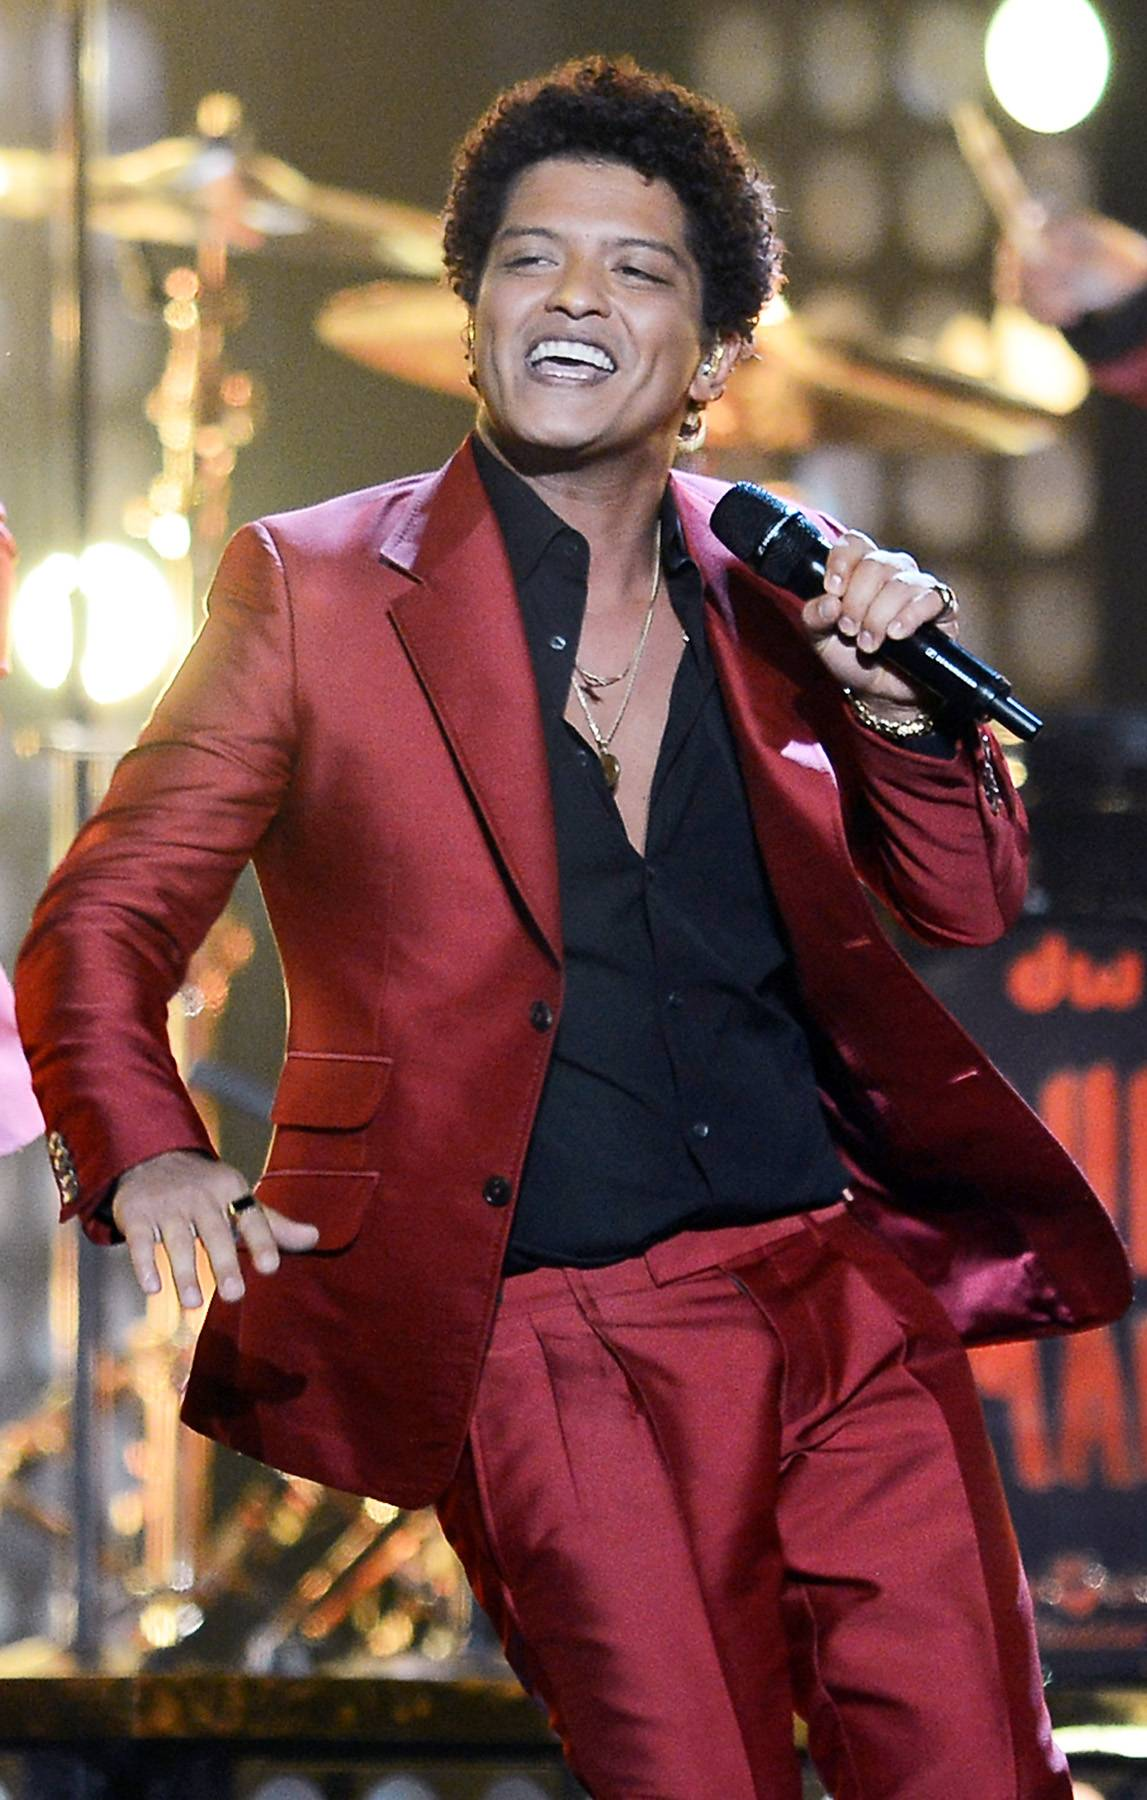 """Best Dance Performance: Bruno Mars - """"Treasure"""" - Bruno Mars shows off his smooth moves in this retro-centric video.(Photo: Ethan Miller/Getty Images)"""